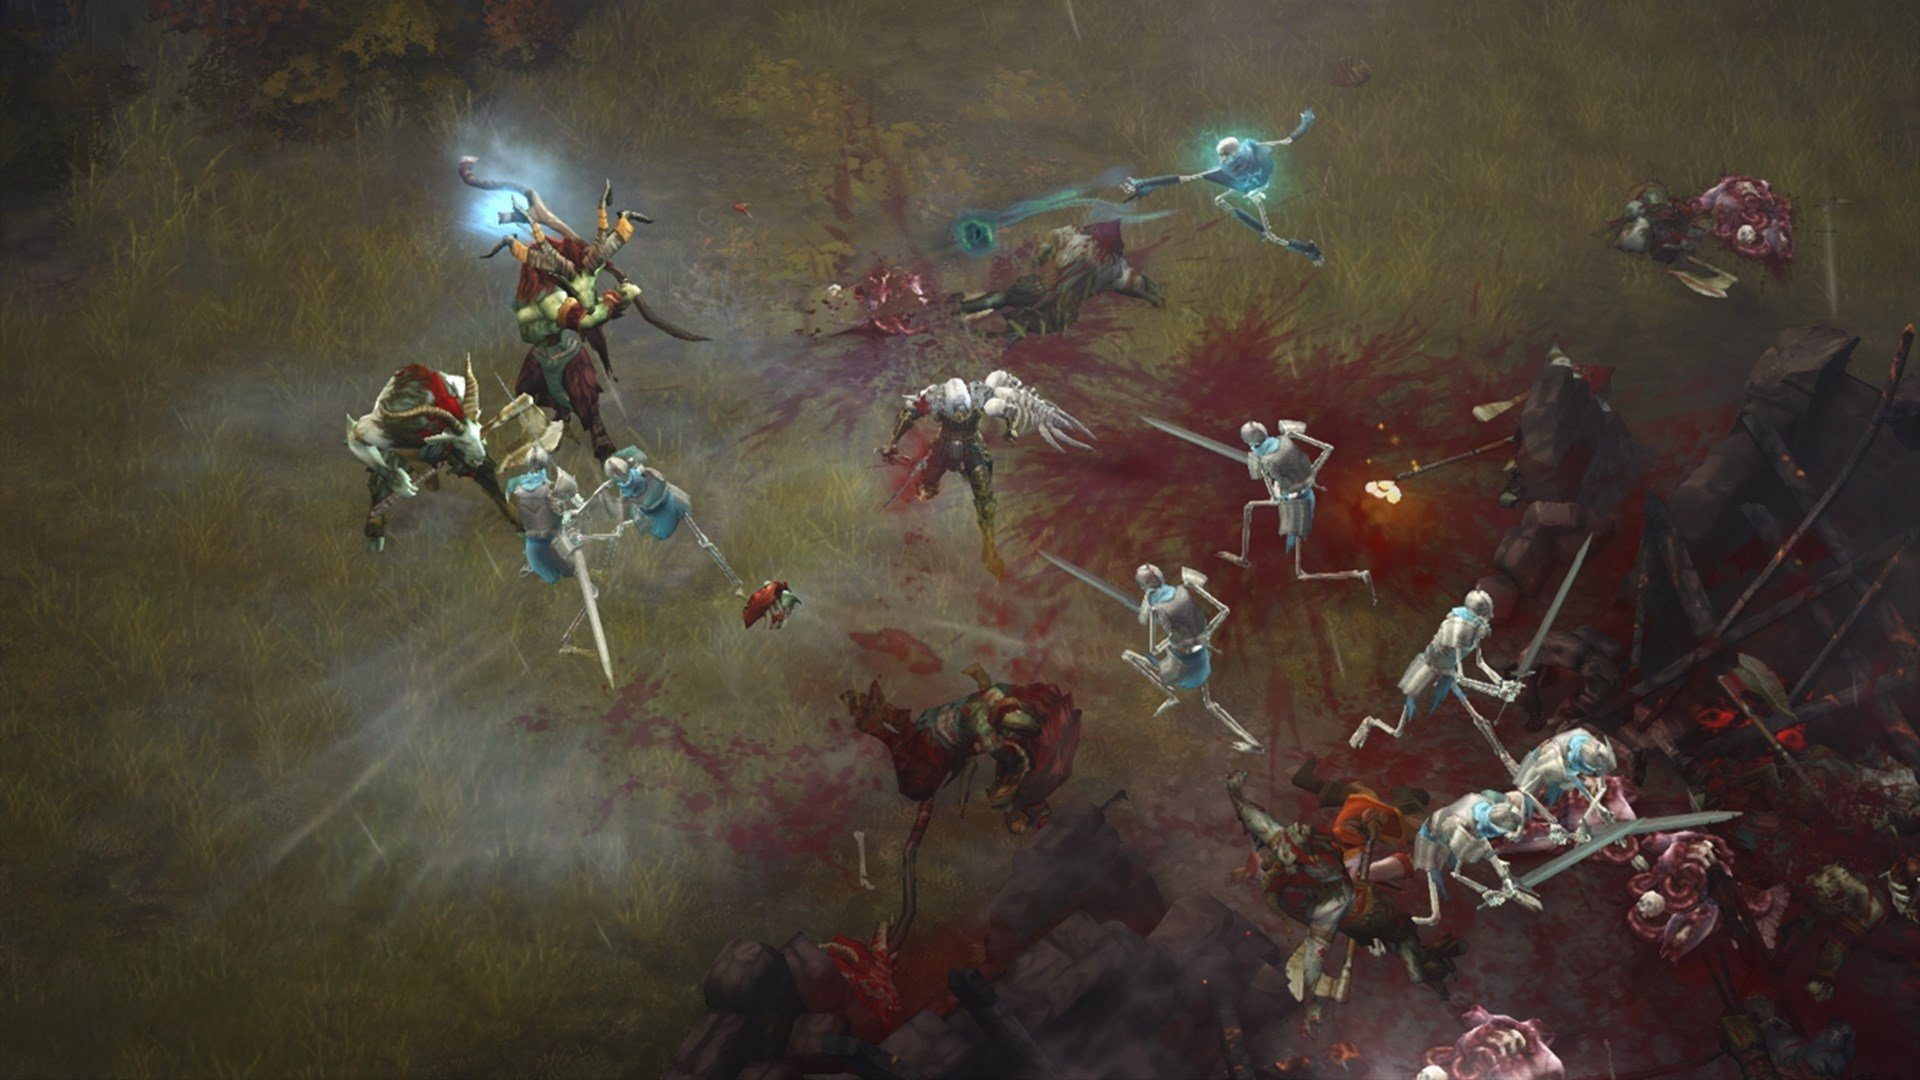 Apparsa in rete una Eternal Collection di Diablo III per PlayStation 4 e Xbox One